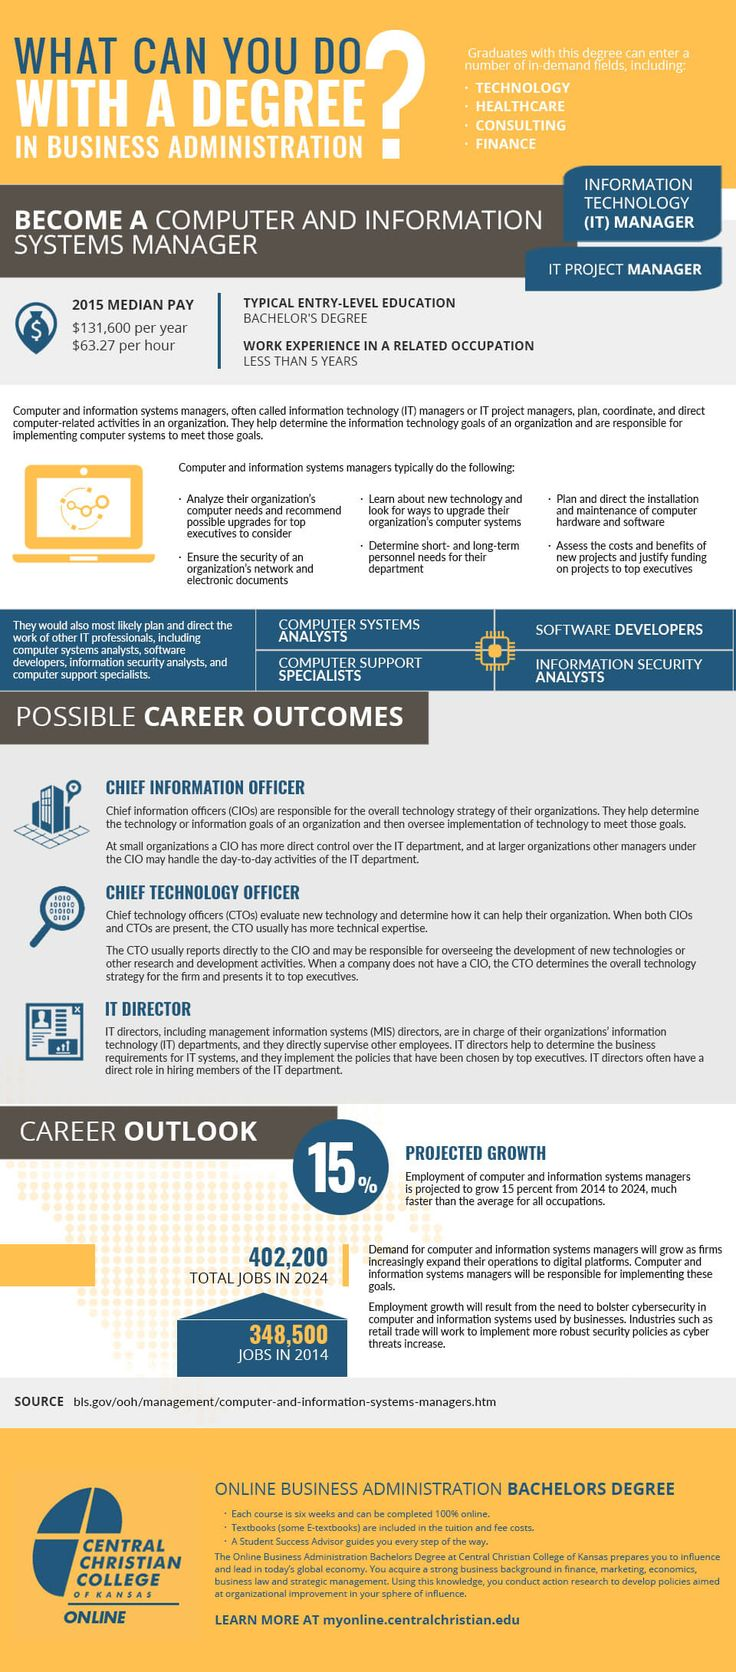 Business Administration Career Opportunities image by